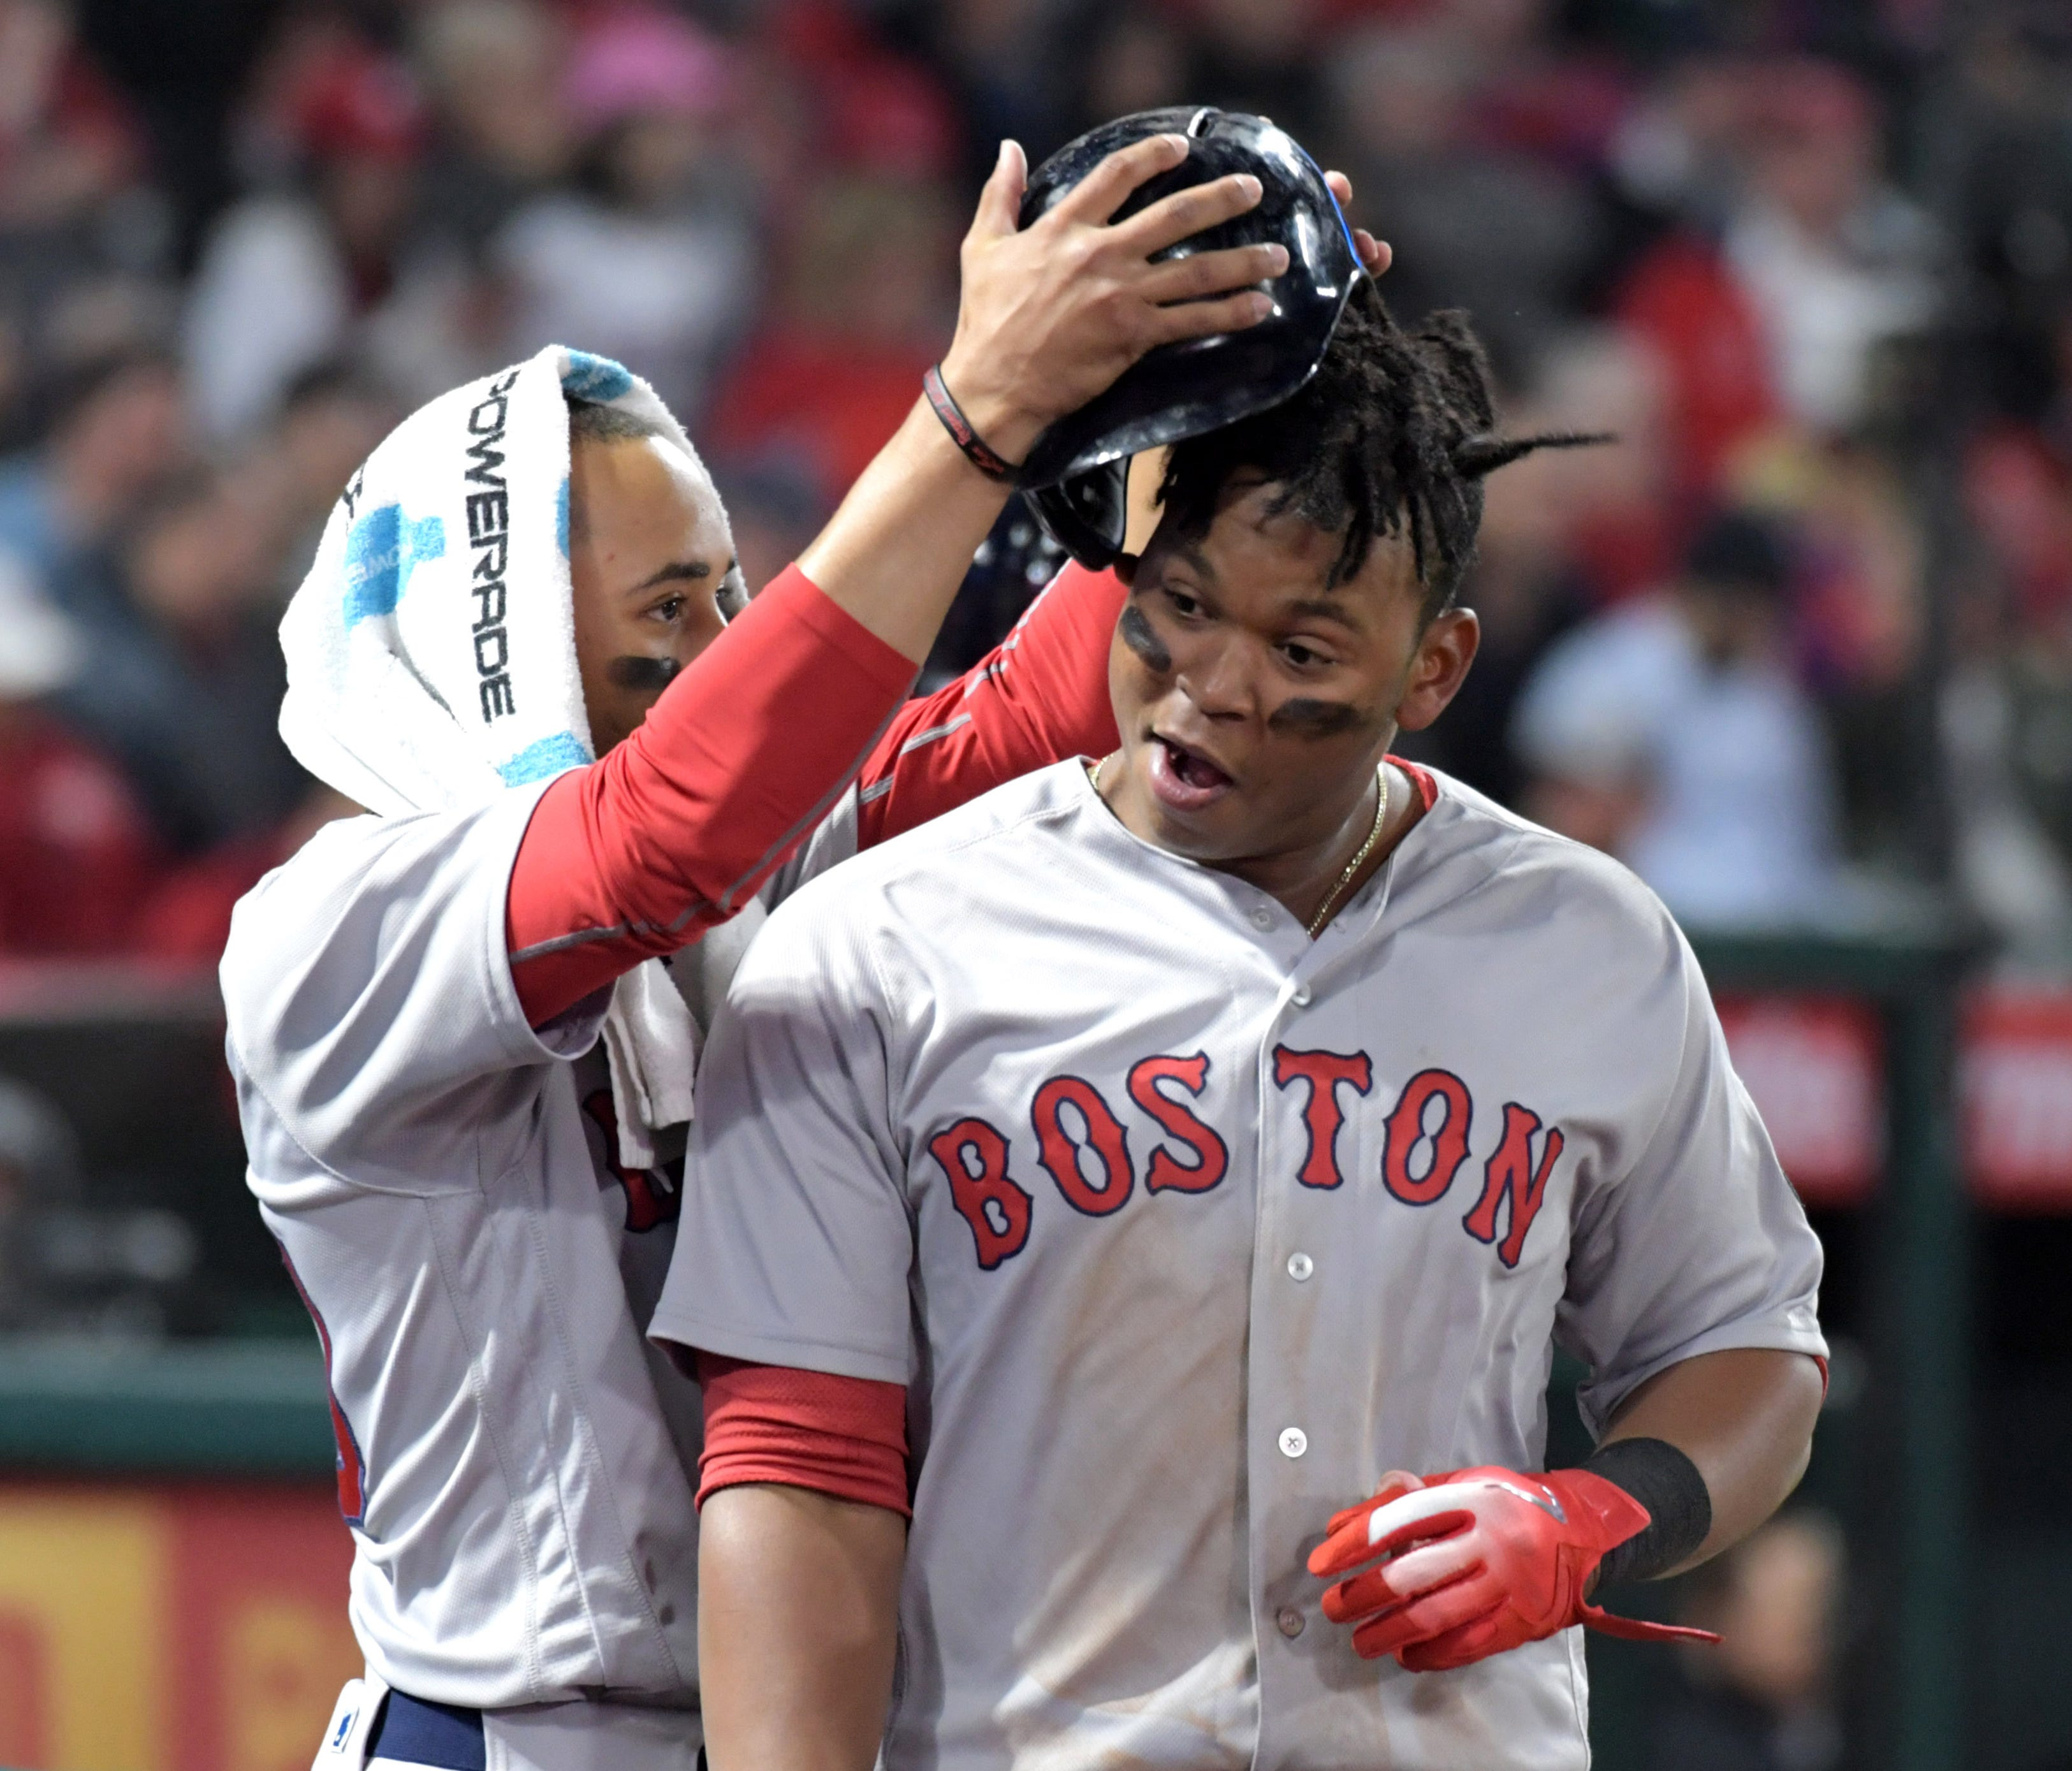 After an off year - for him - in 2017, Mookie Betts has regained his MVP-caliber form of 2016.